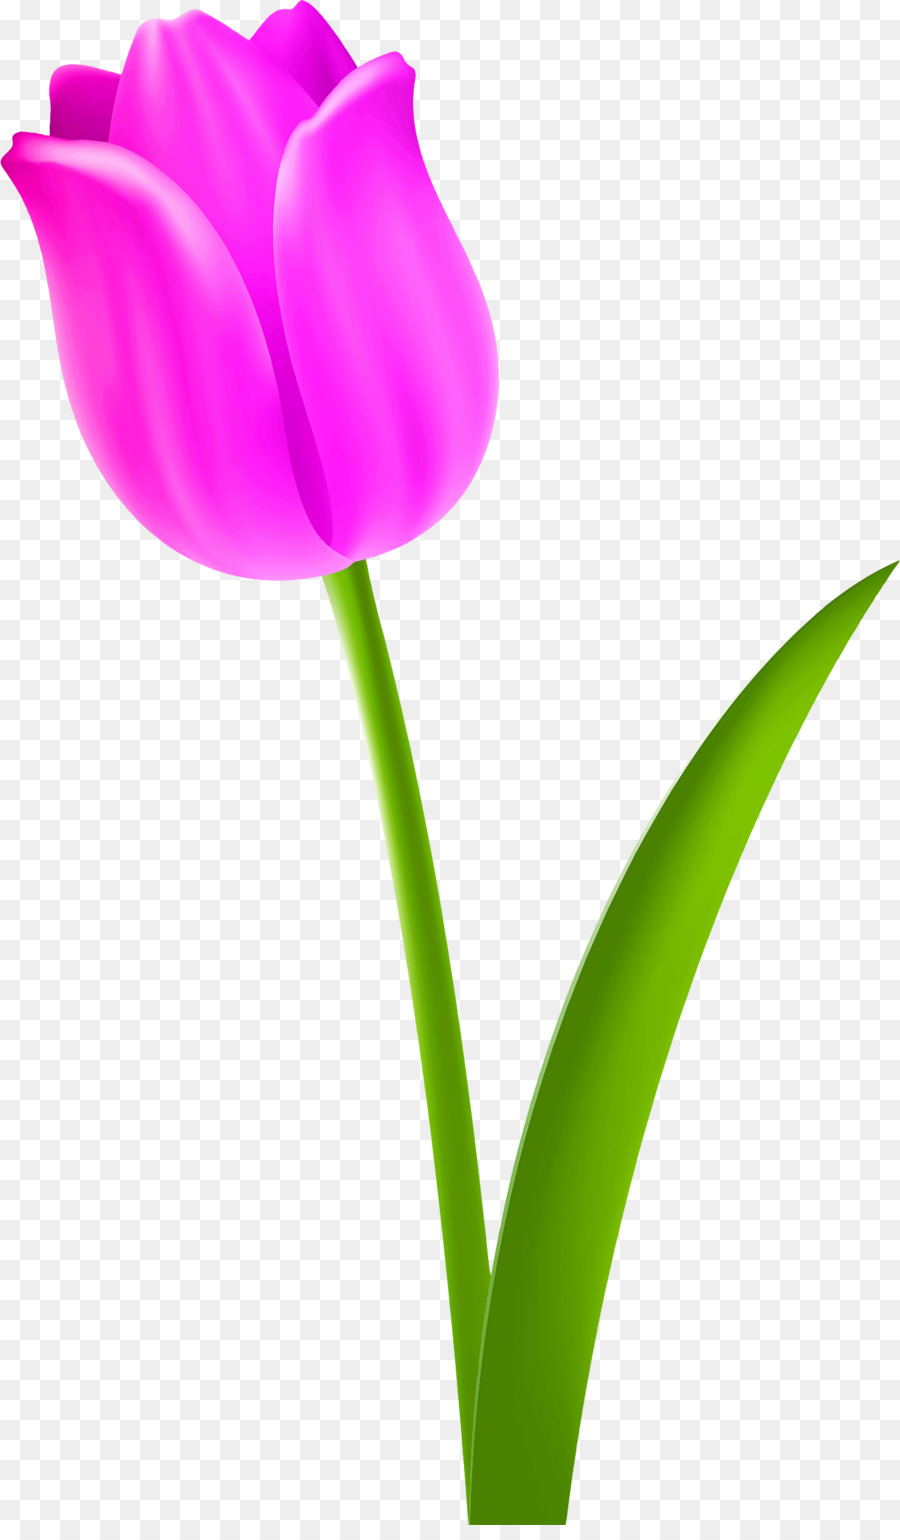 Clipart tulip vector black and white download Flowers Clipart Background clipart - Tulip, Graphics, Illustration ... vector black and white download